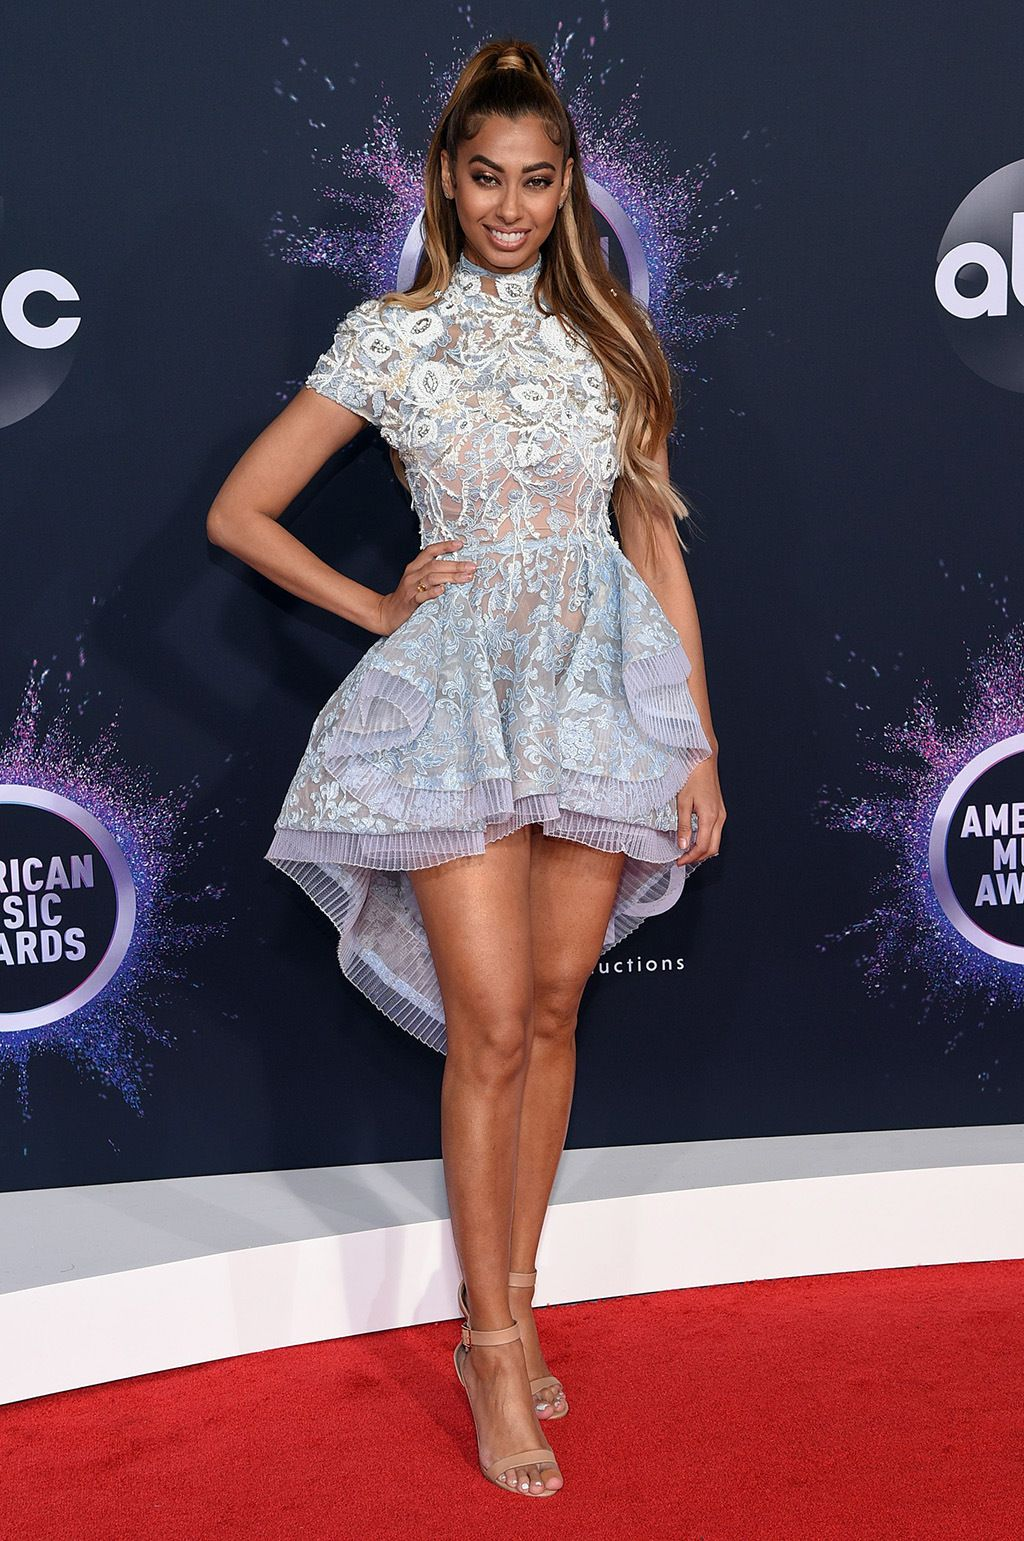 8 Most Beautiful Celebrity Dresses at American Music